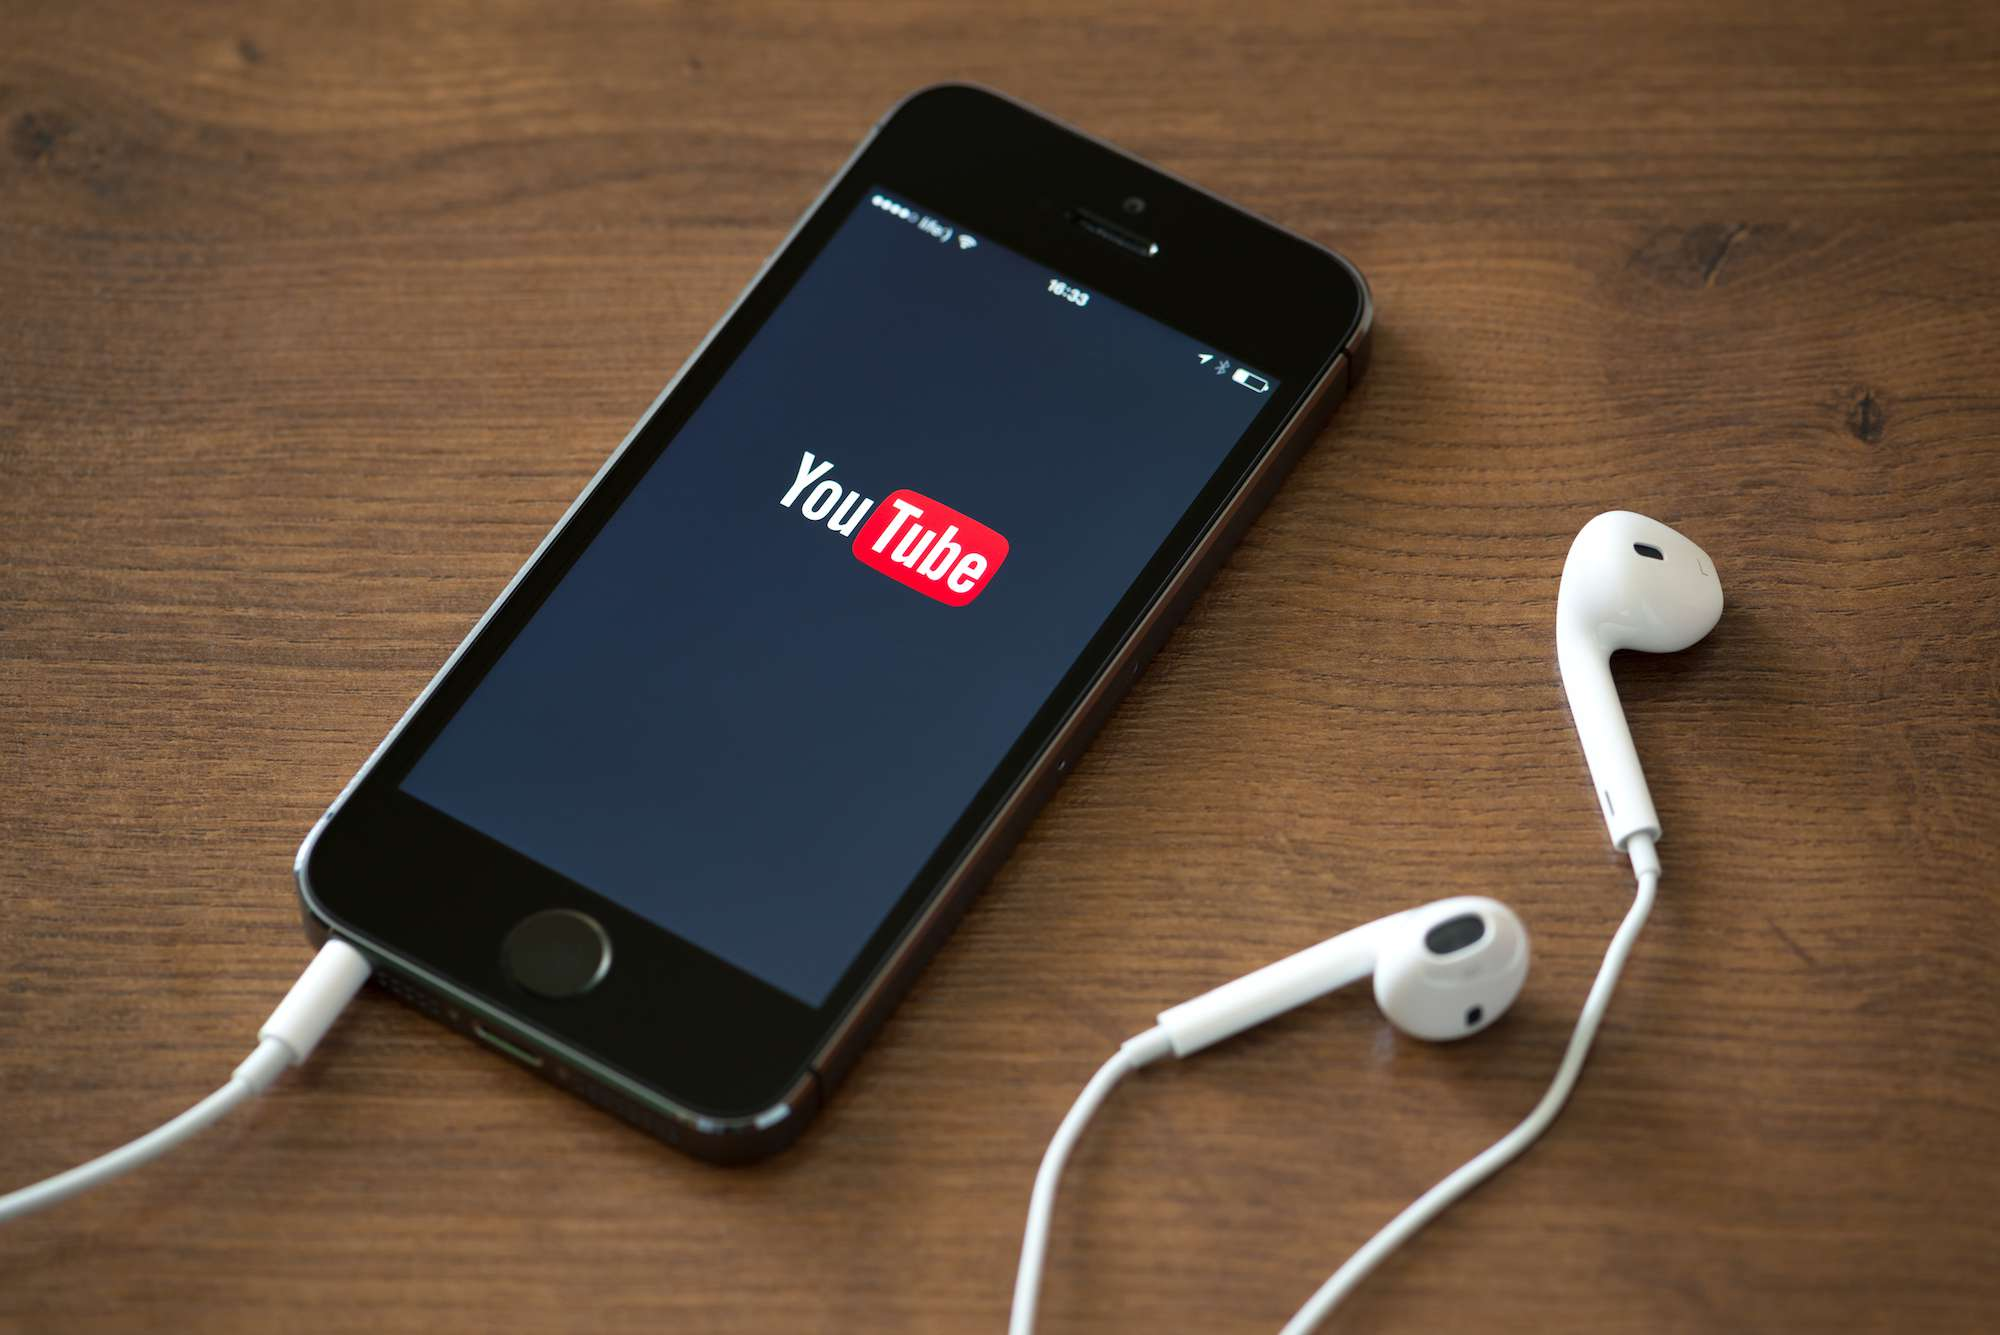 A smartphone with the YouTube app opened.